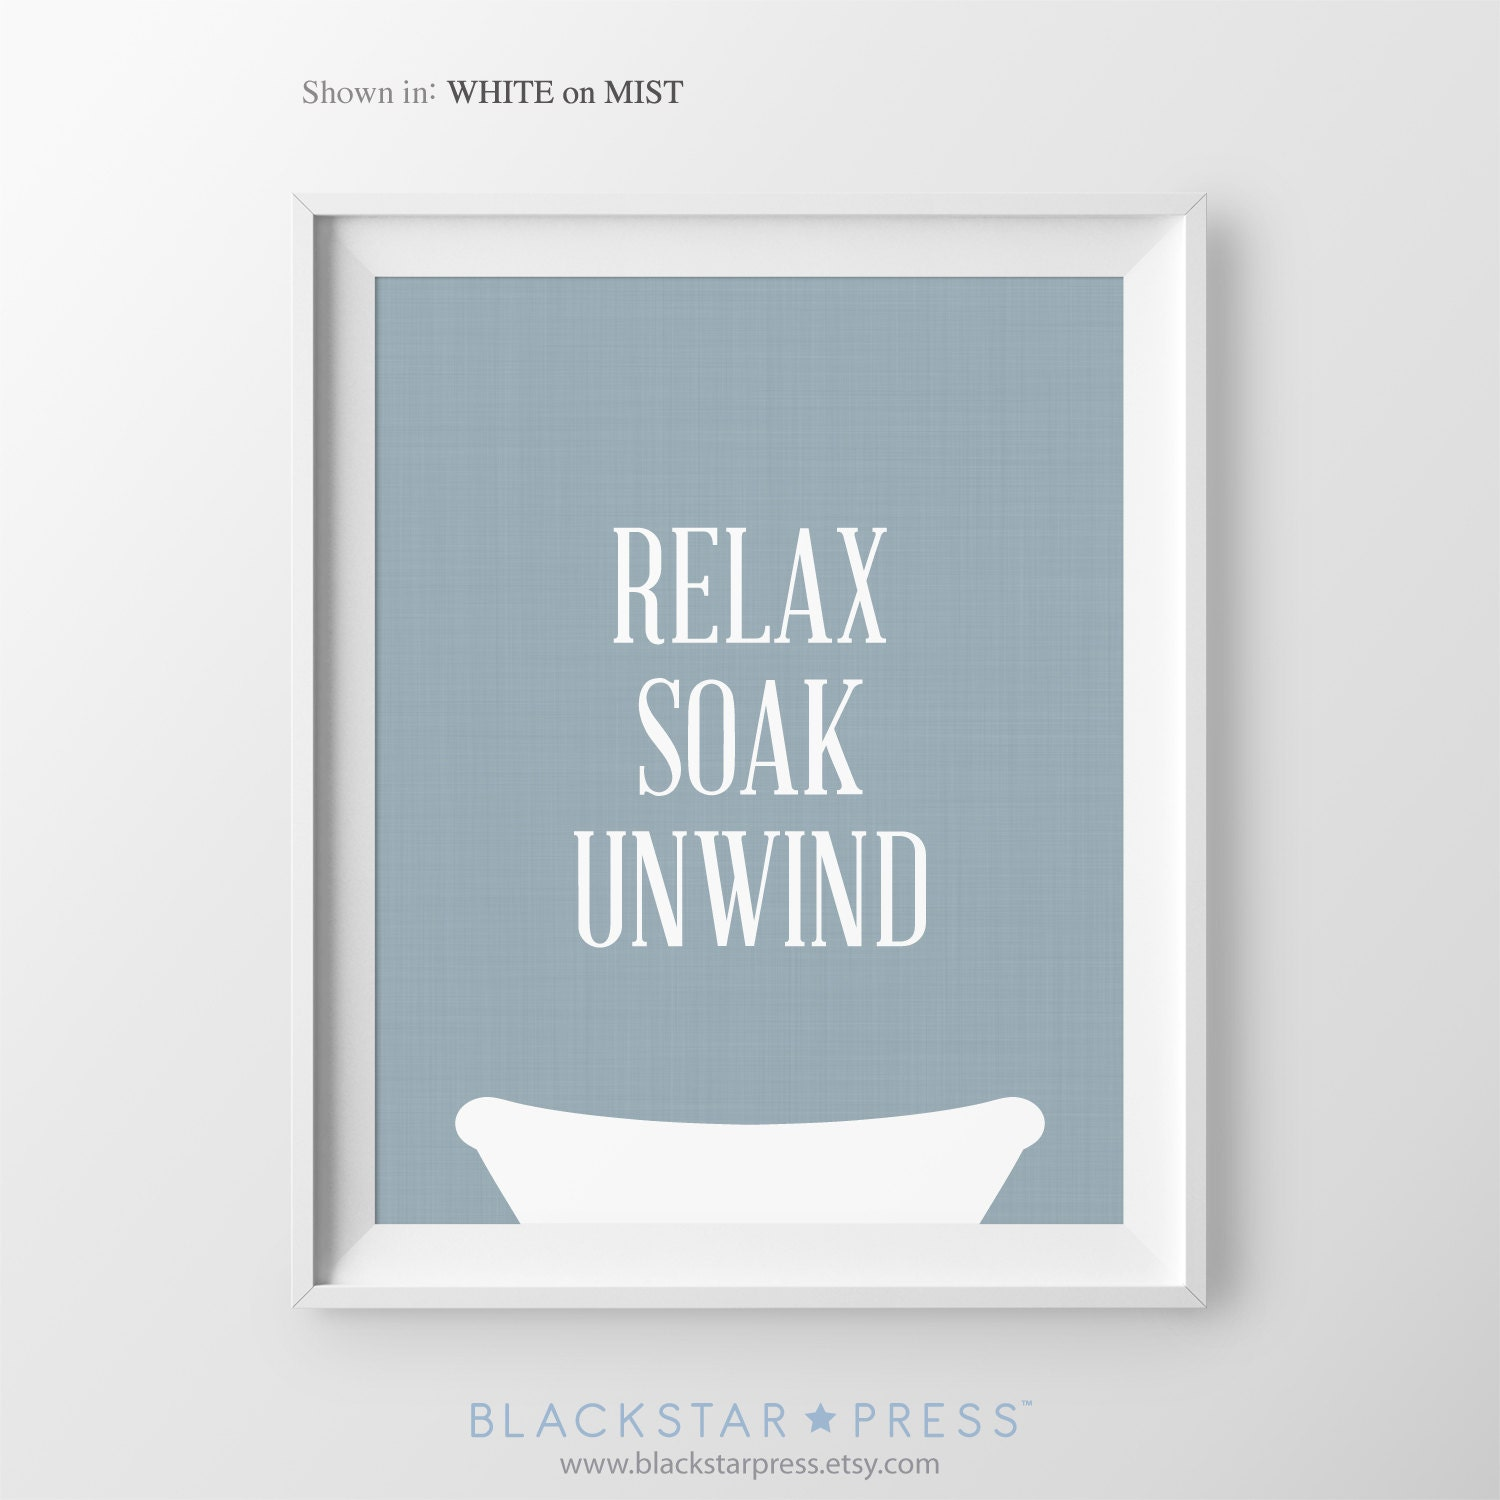 Relax Soak Unwind Navy Blue Bathroom Decor Powder Room Art Bathroom Wall  Art Bathroom Sign Relax Renew Refresh Navy Bathroom Wall Decor